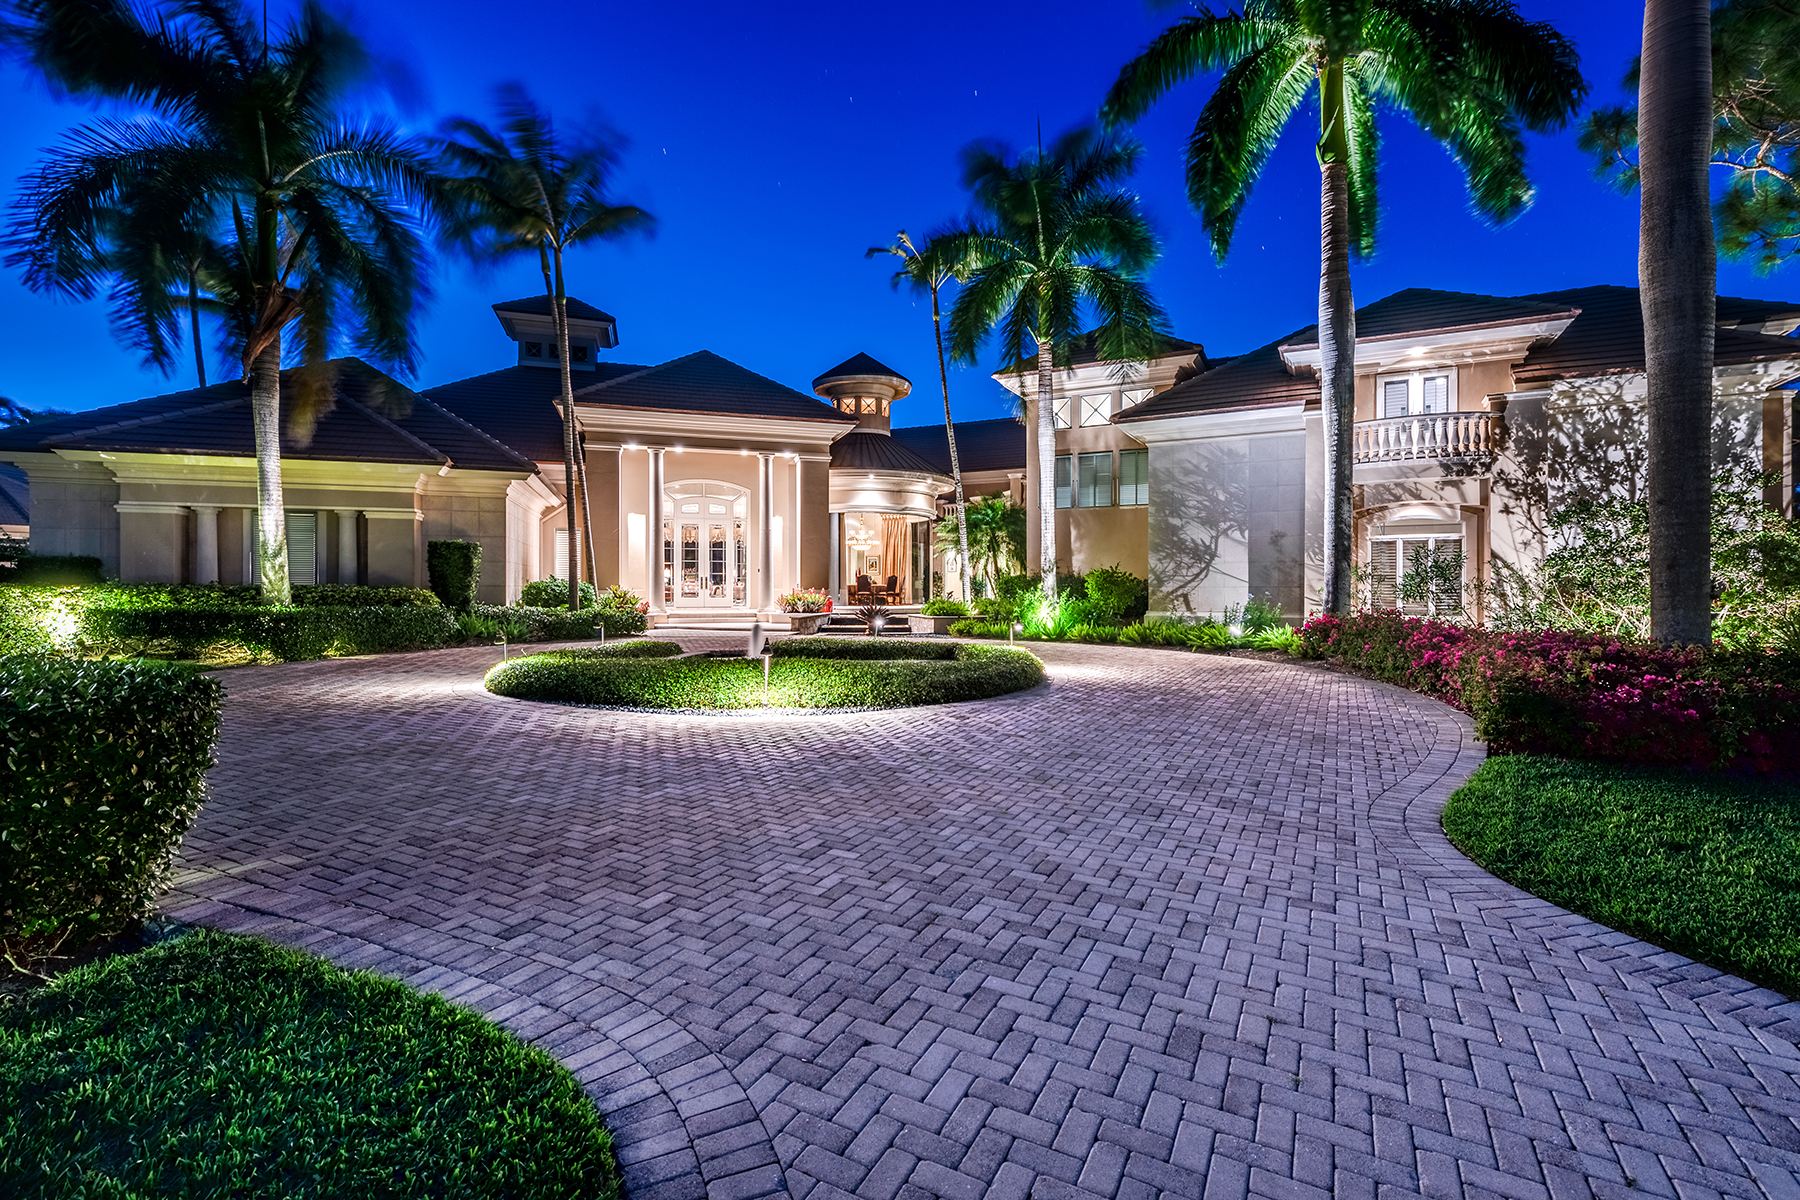 Single Family Homes pour l Vente à BONITA BAY - SPRING RIDGE 26070 Mandevilla Drive Bonita Springs, Floride 34134 États-Unis